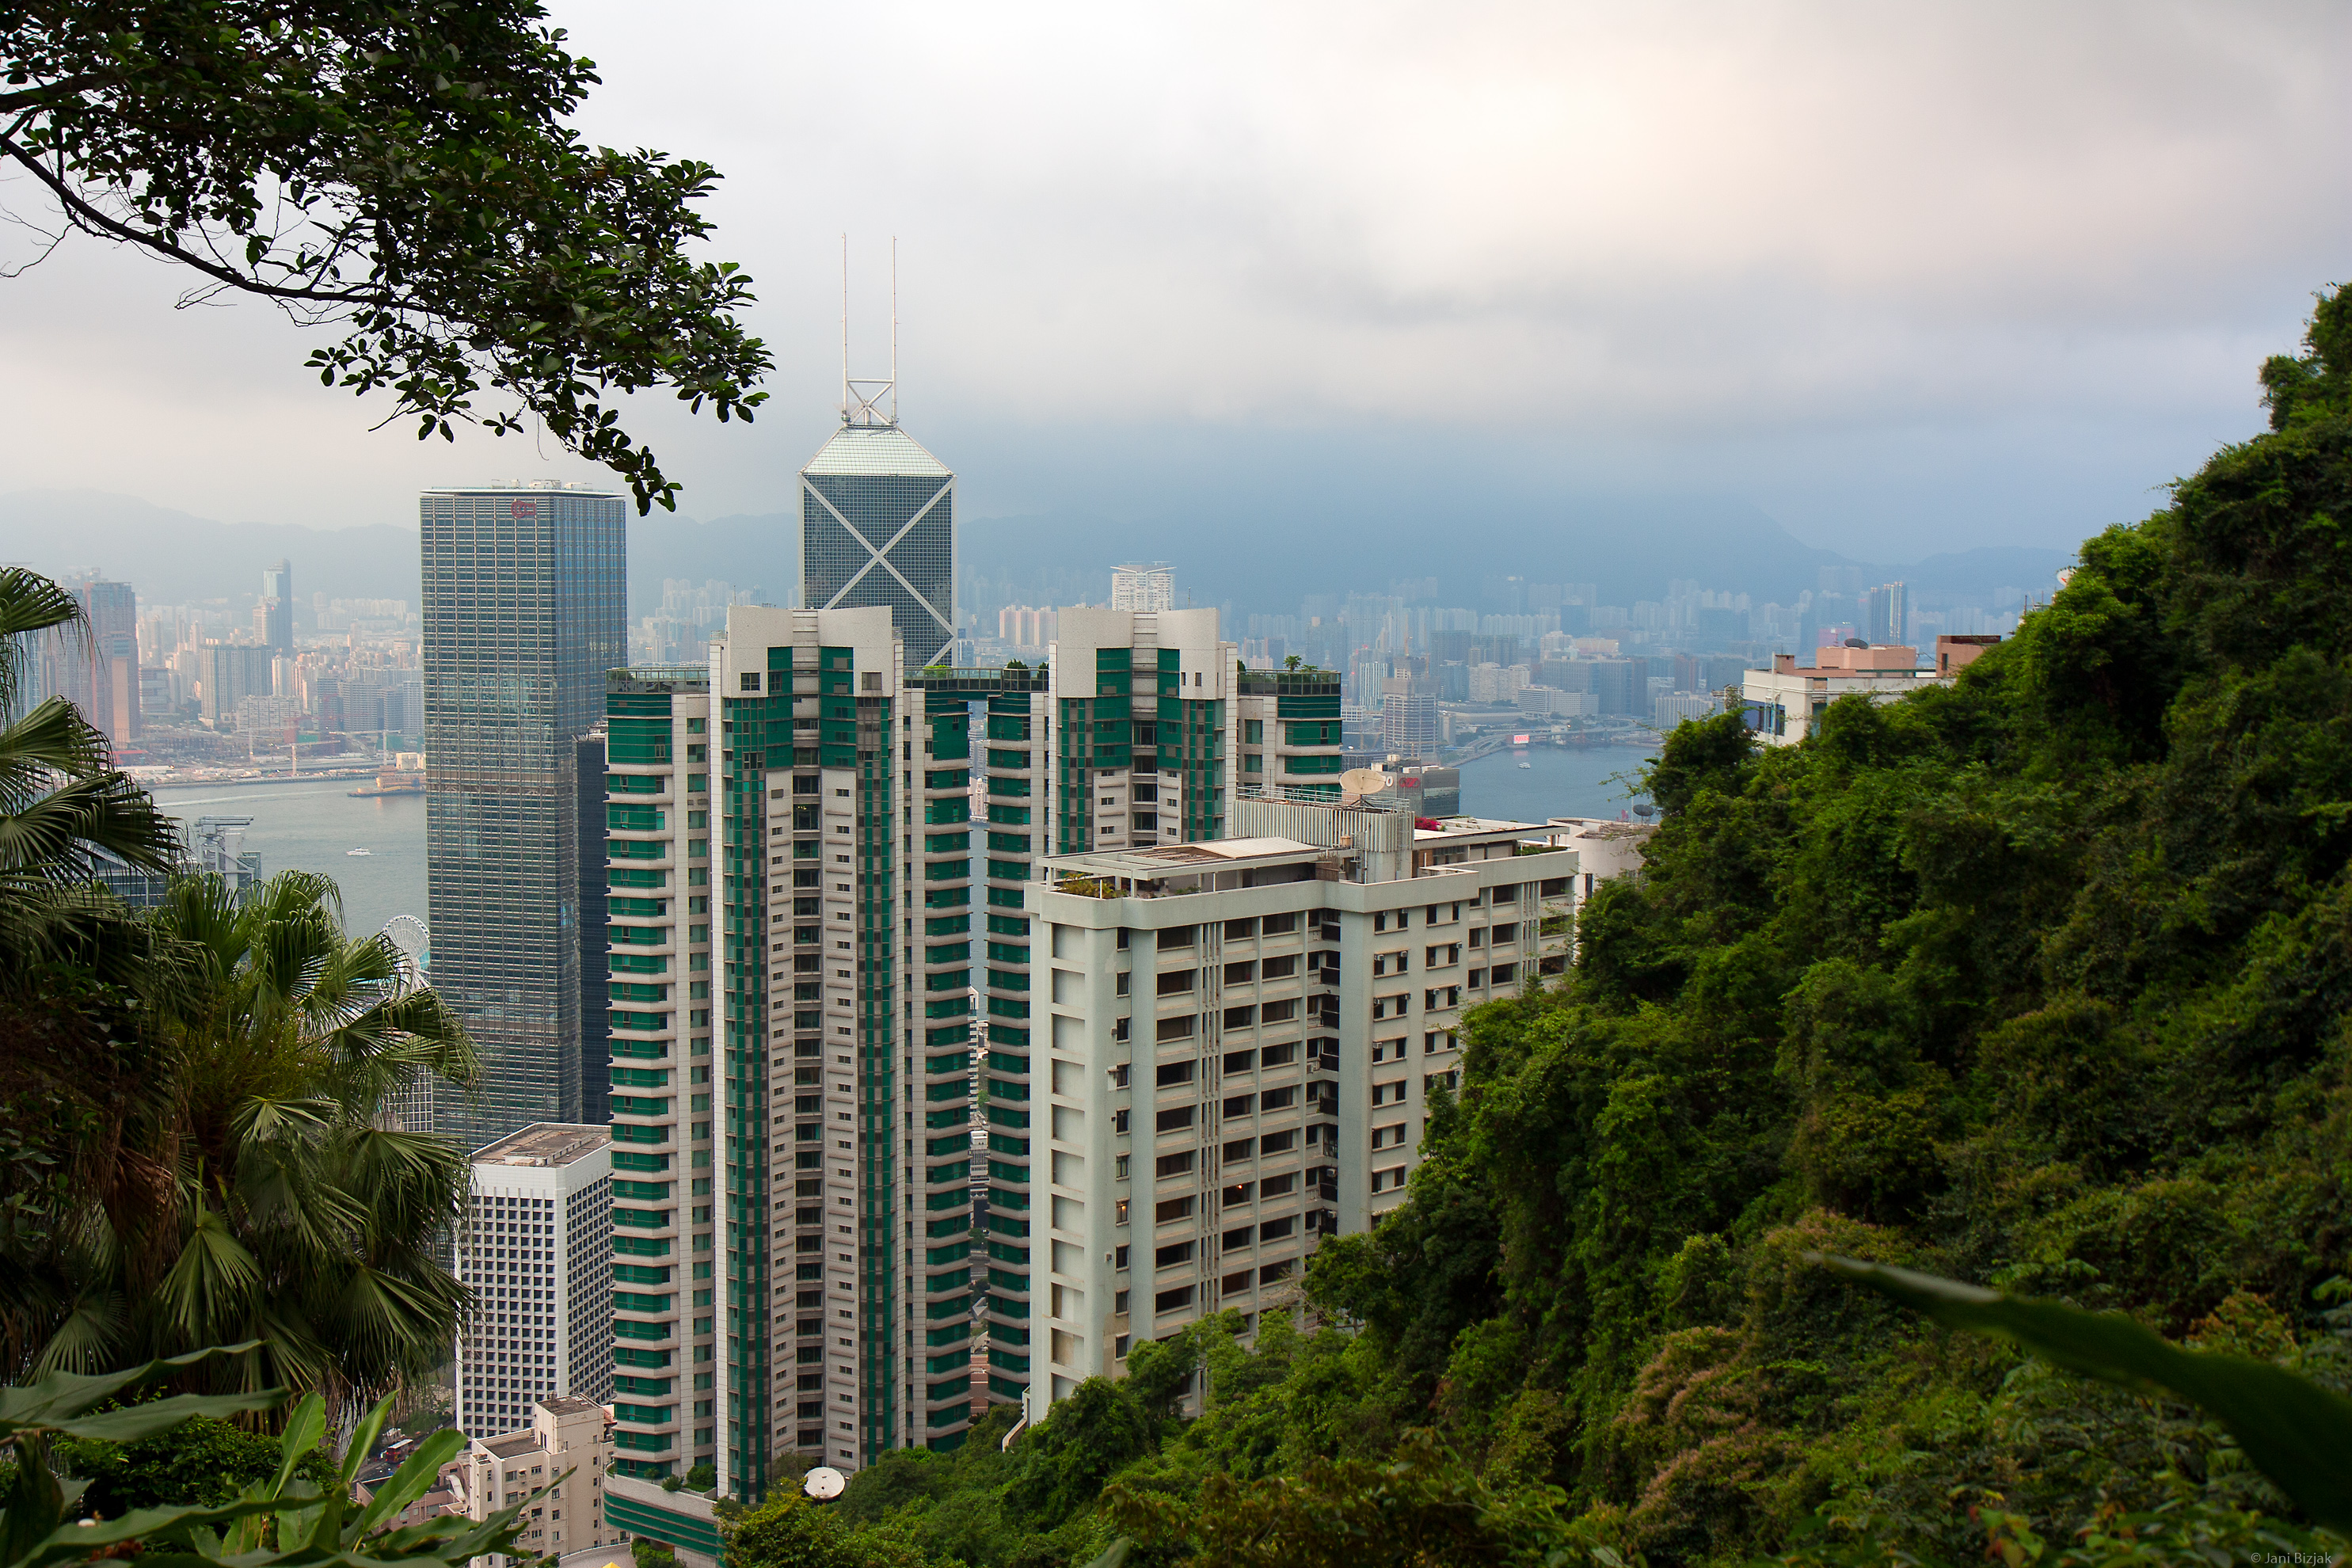 View of the city from the hill.